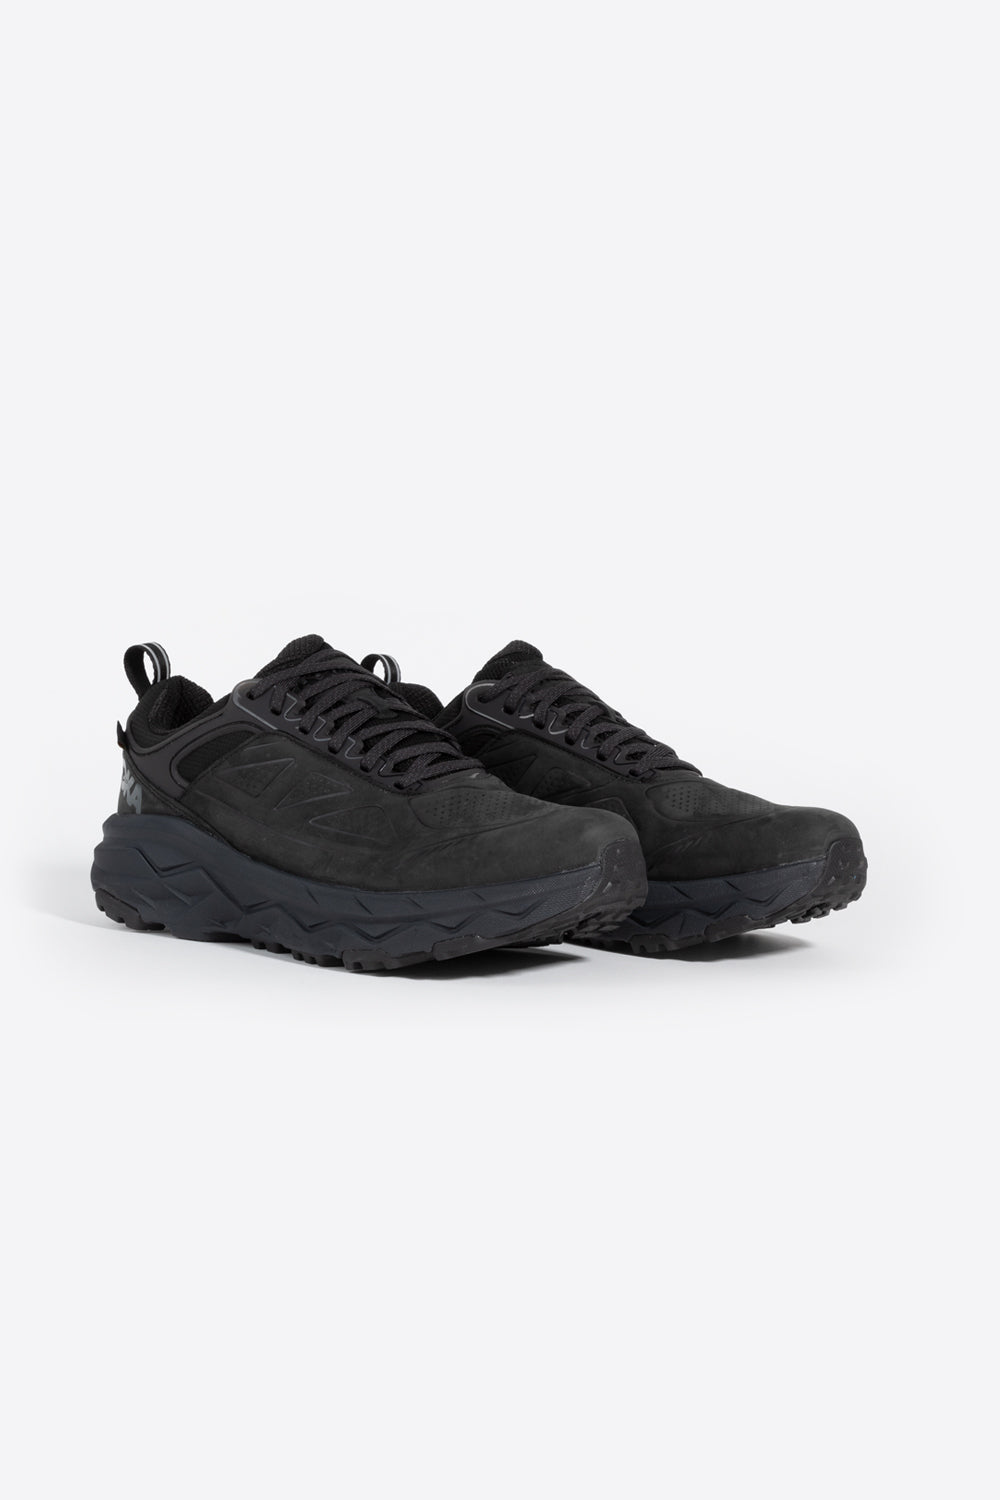 Hoka One One challenger Gore-tex low black